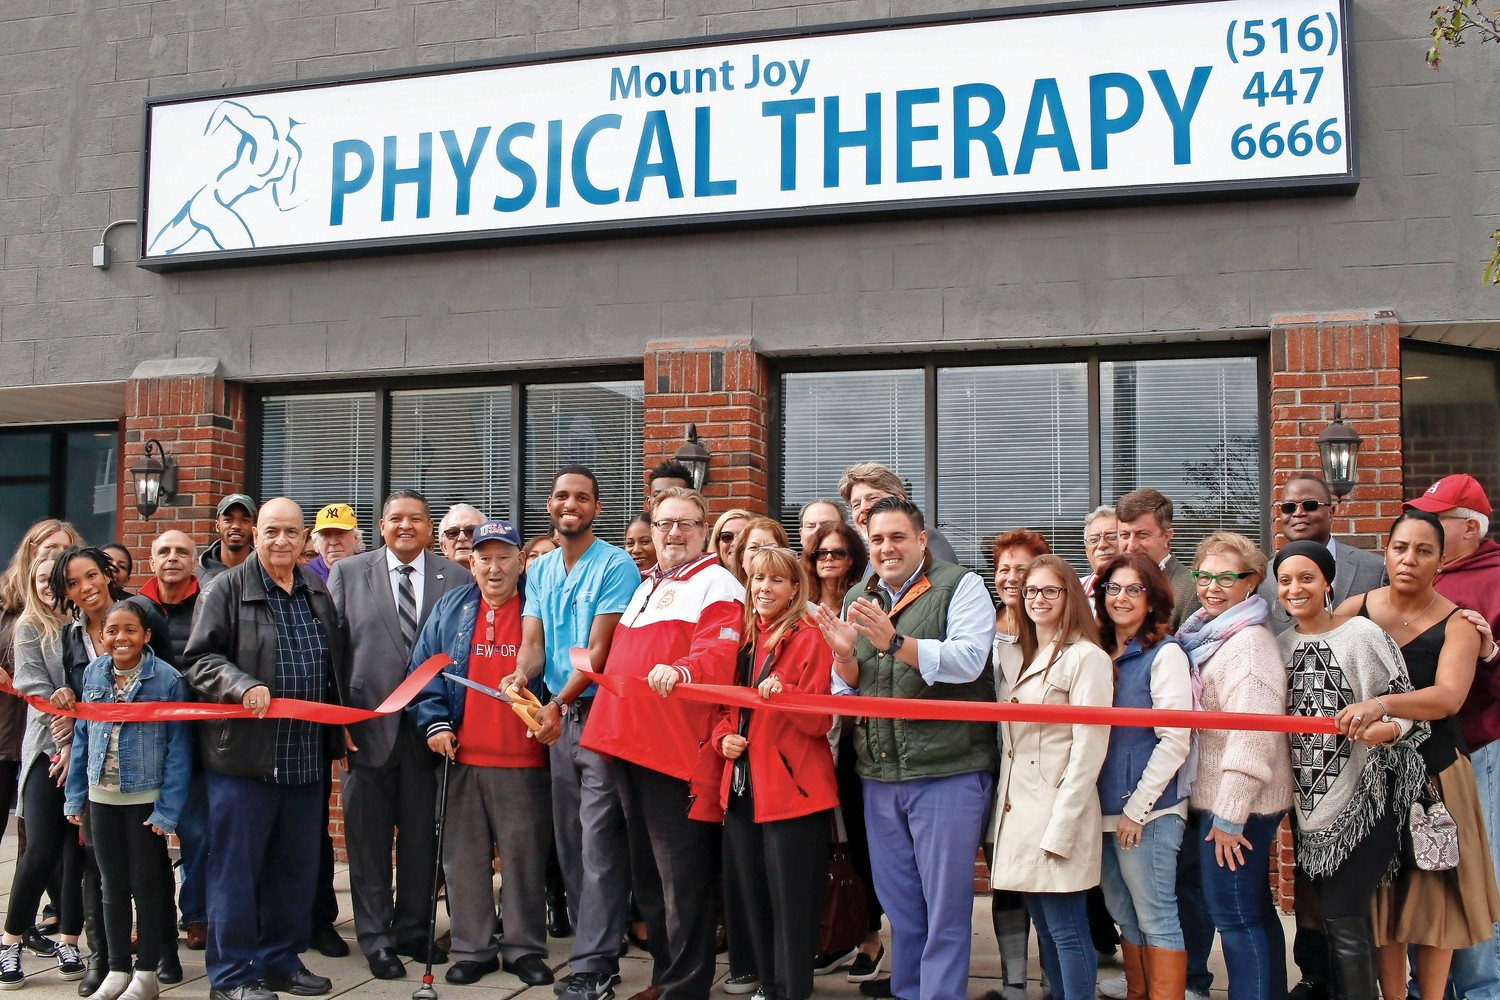 Steve Lubin, center, owns Mount Joy Physical Therapy, which also had a ribbon cutting on Saturday. Lubin was joined by his family and friends and chamber members at the event.